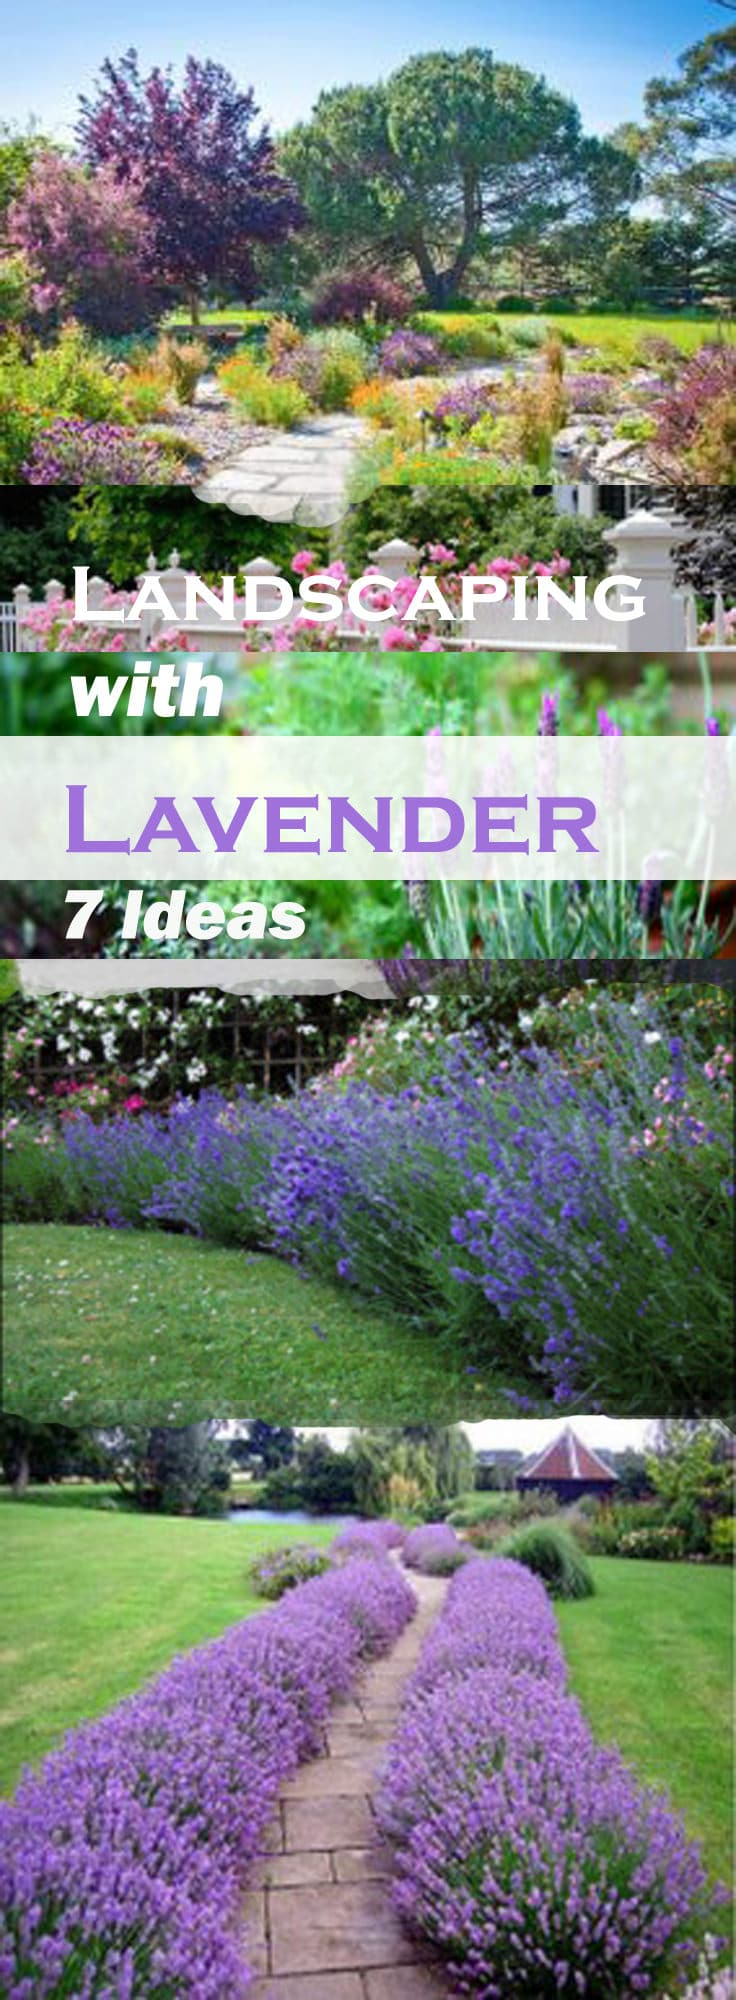 Landscaping with lavender 7 garden design ideas for Garden design ideas photos